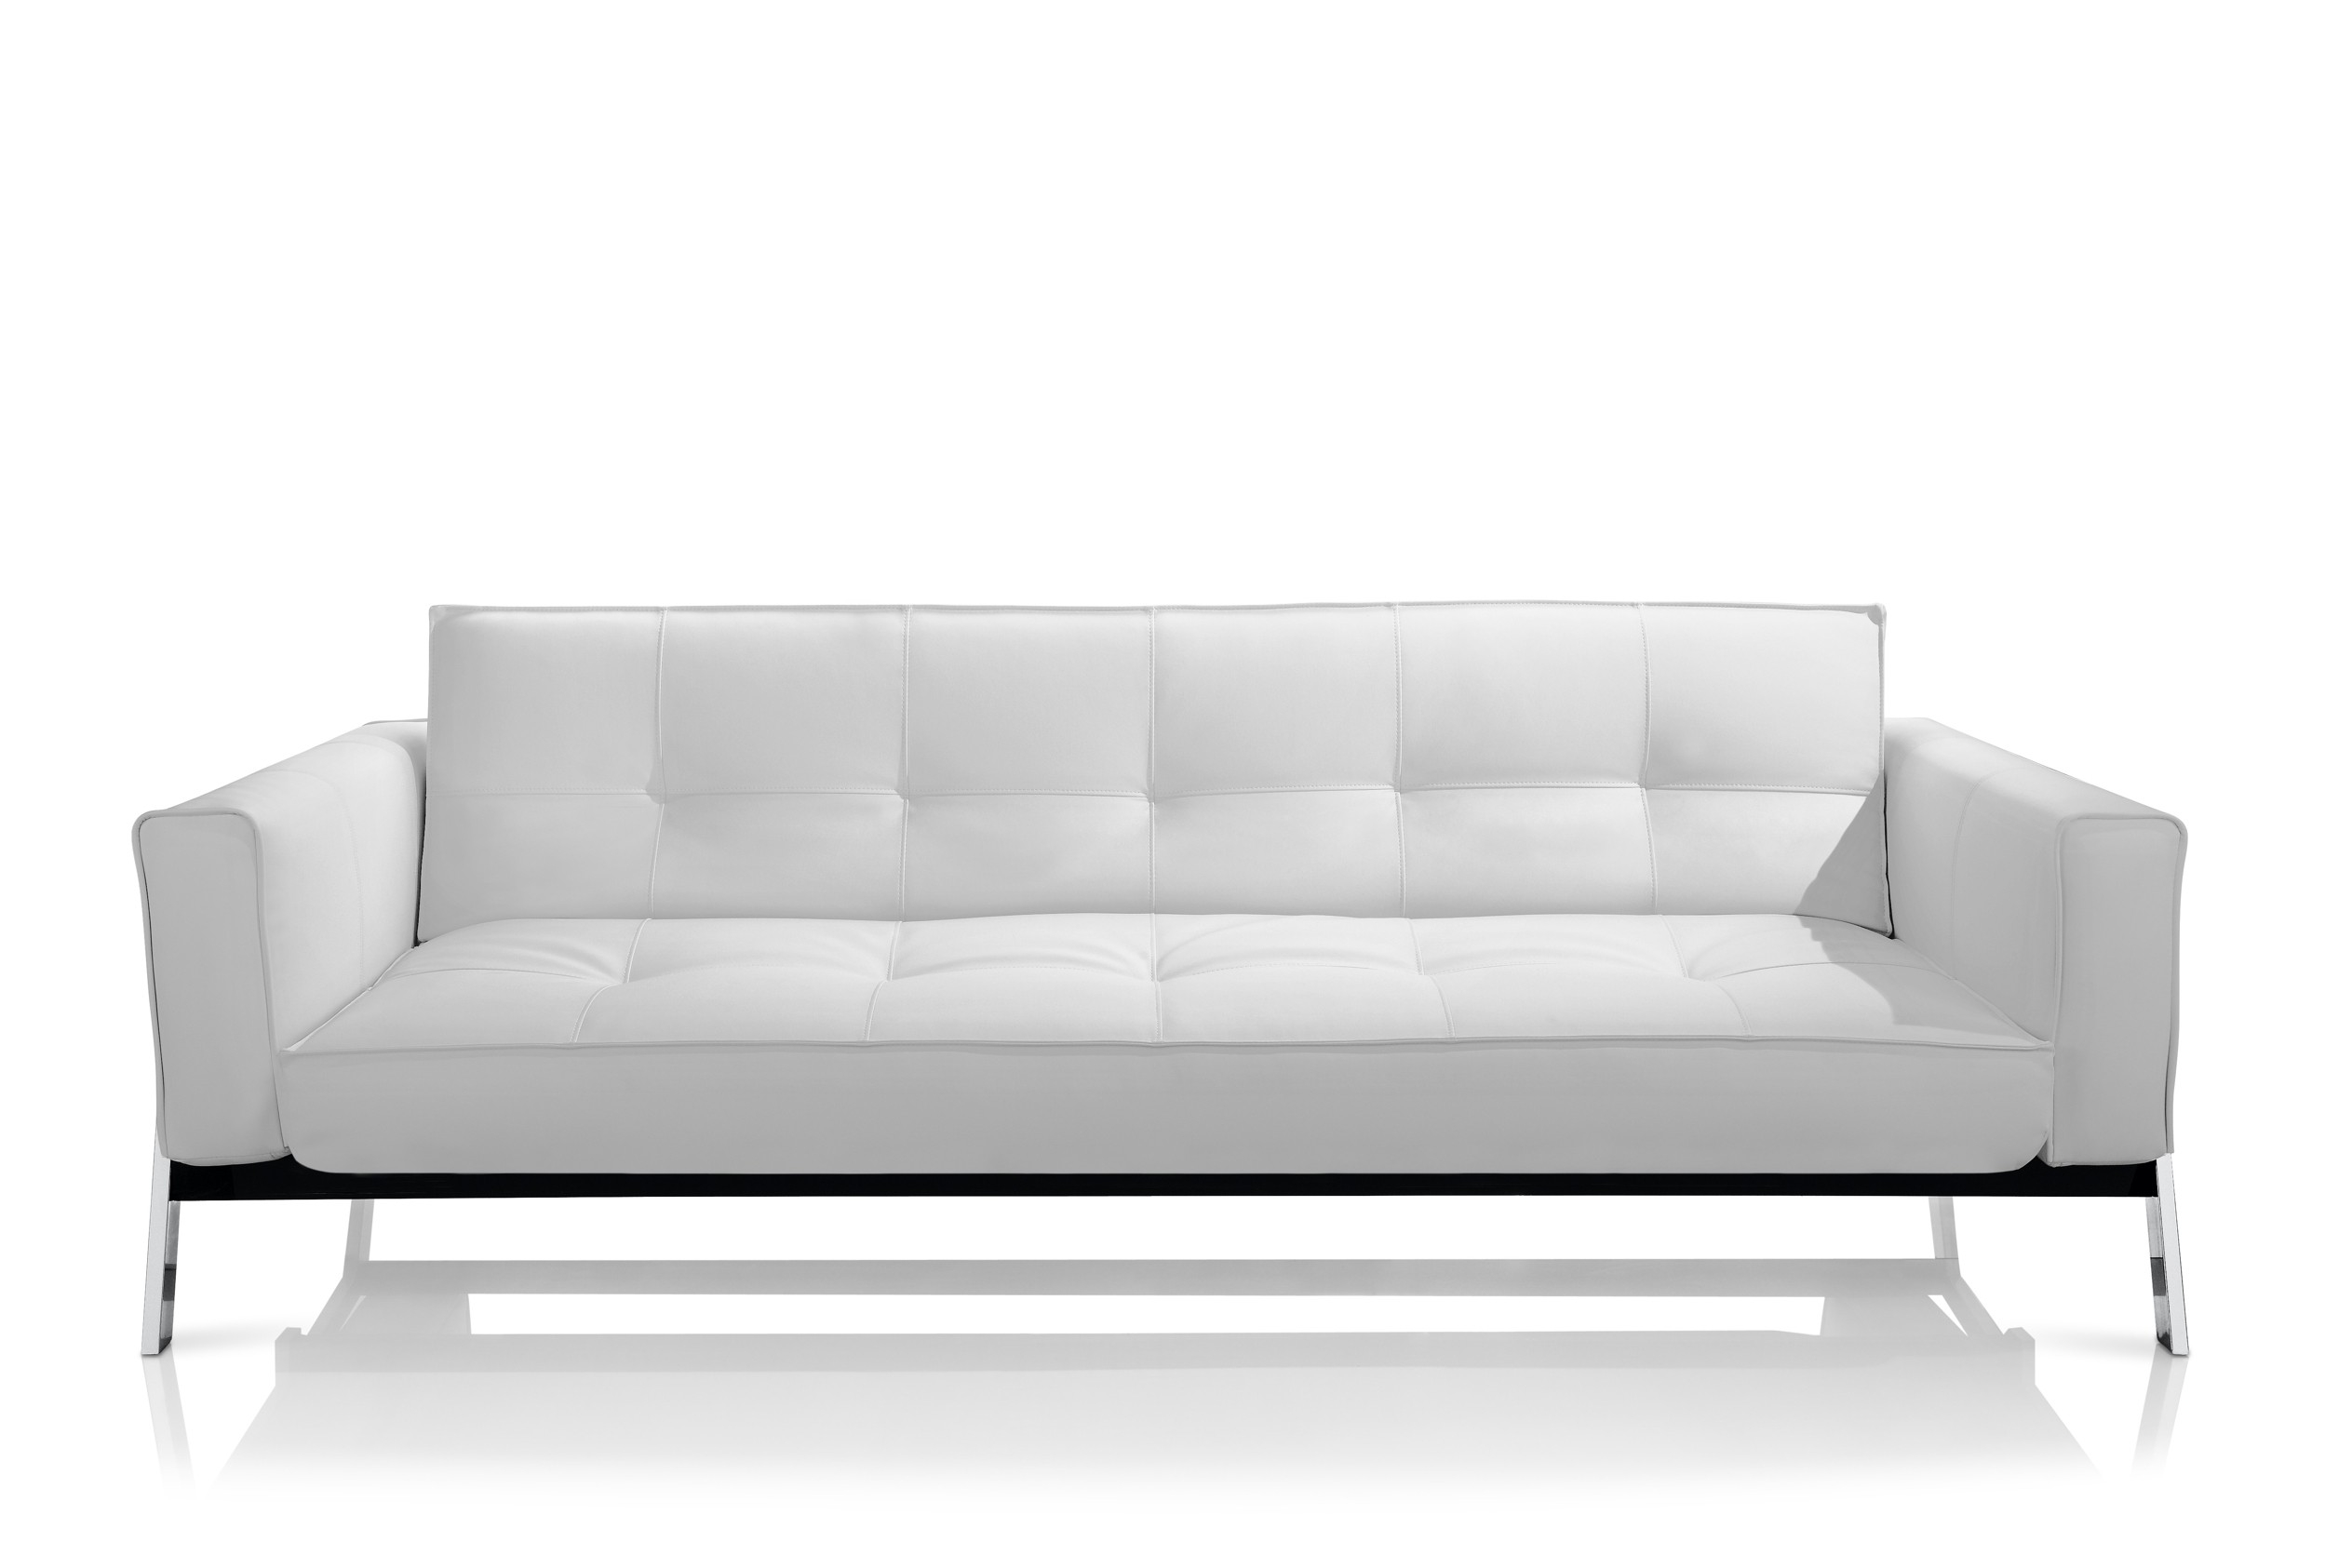 Awesome White Fabric Sofa New White Fabric Sofa 30 Sofas And Pertaining To White Sofa Chairs (Image 1 of 15)